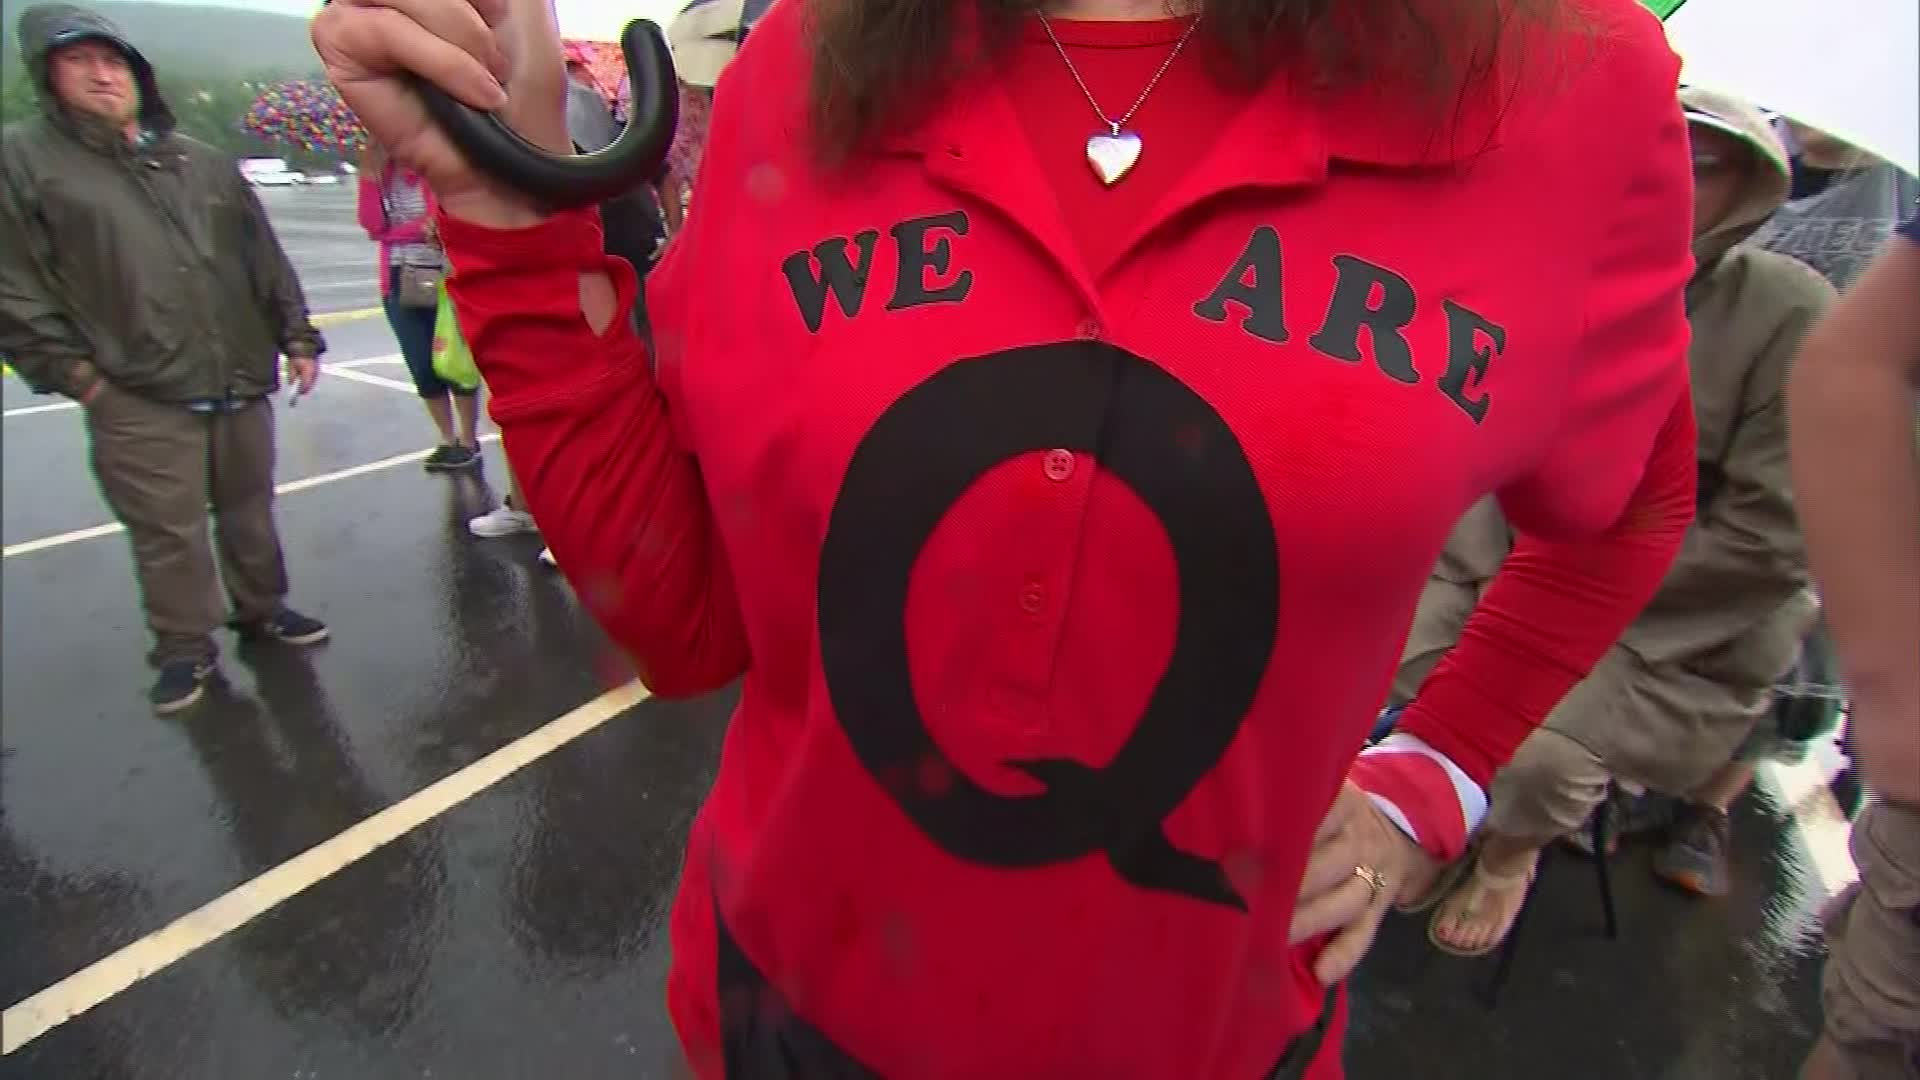 House lawmakers introduce bipartisan resolution to condemn 'dangerous' QAnon conspiracy theory